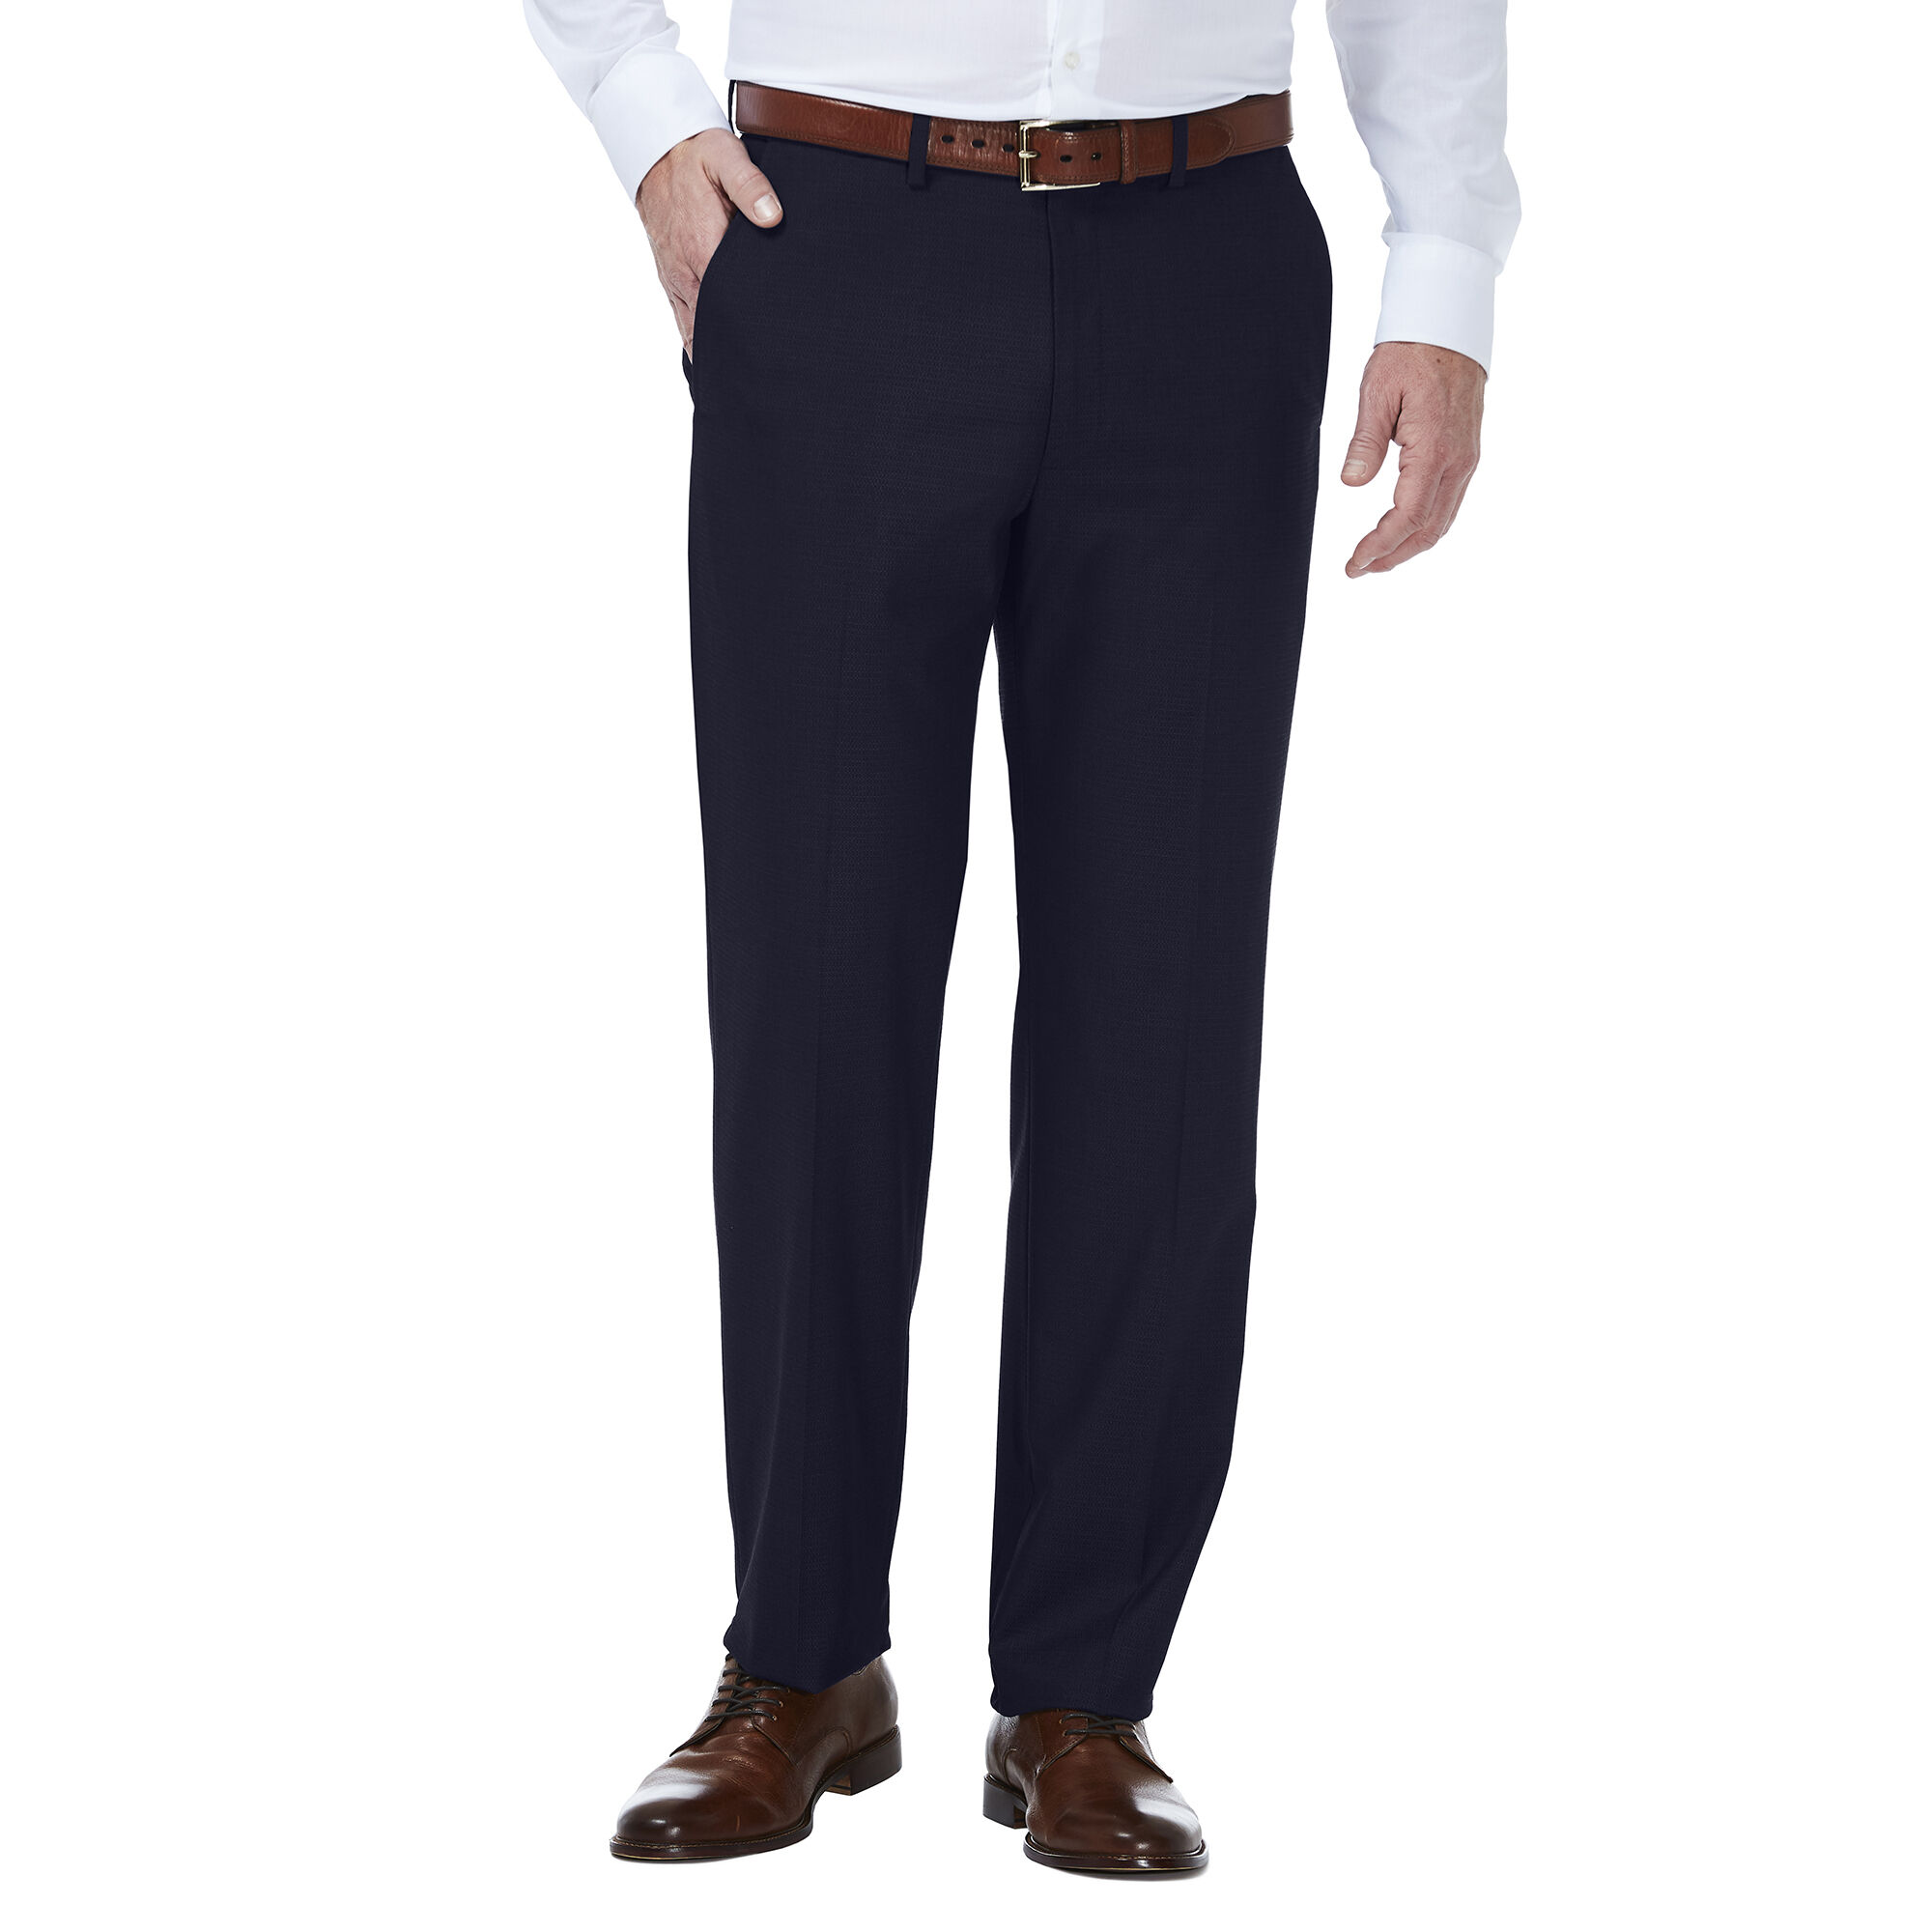 J.M Haggar Mens Premium Dobby Slim Fit Suit Separate Pant